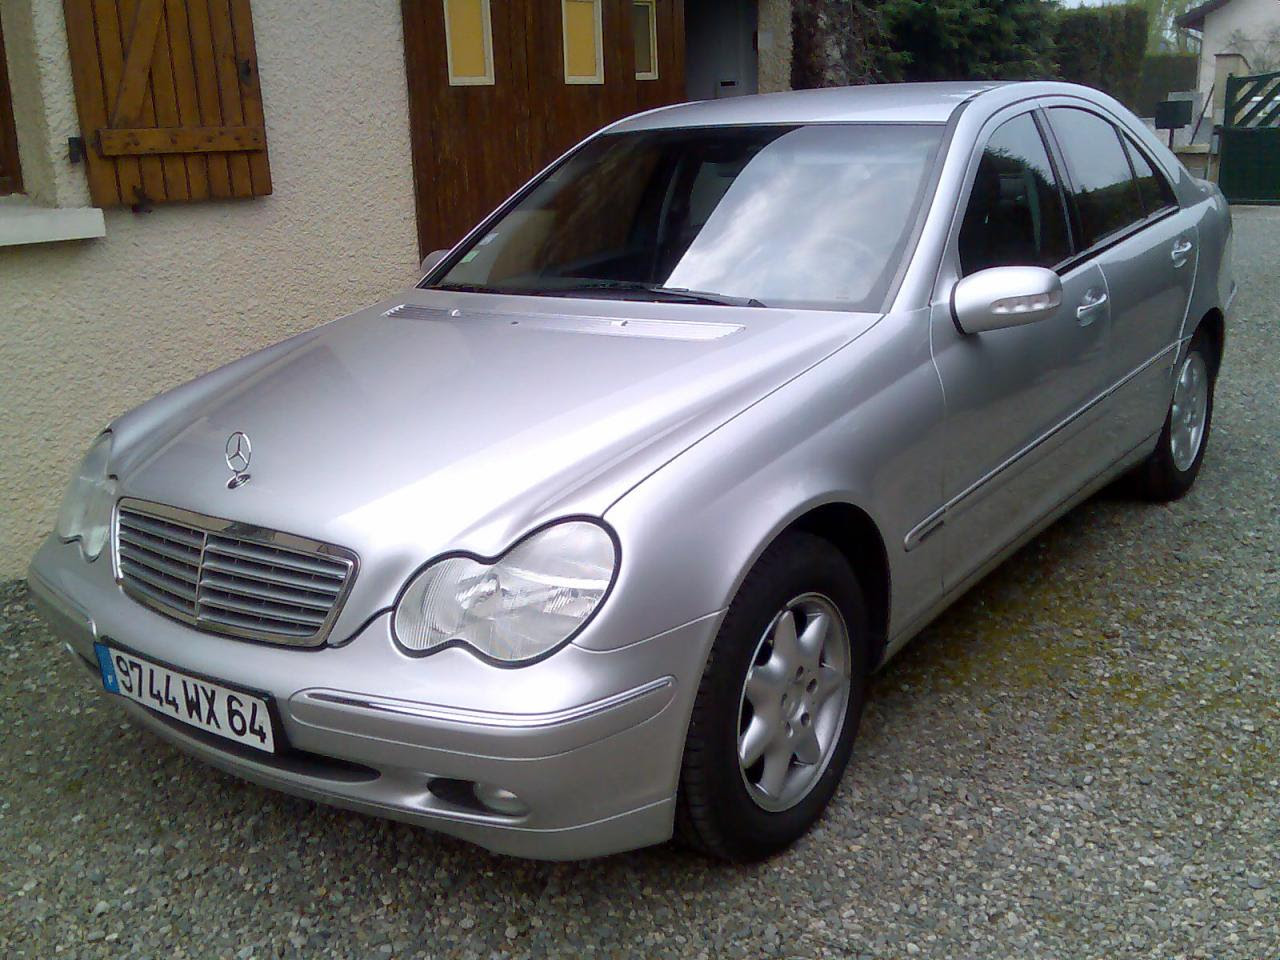 2001 Mercedes-Benz C-Class - Information and photos - Zomb ...